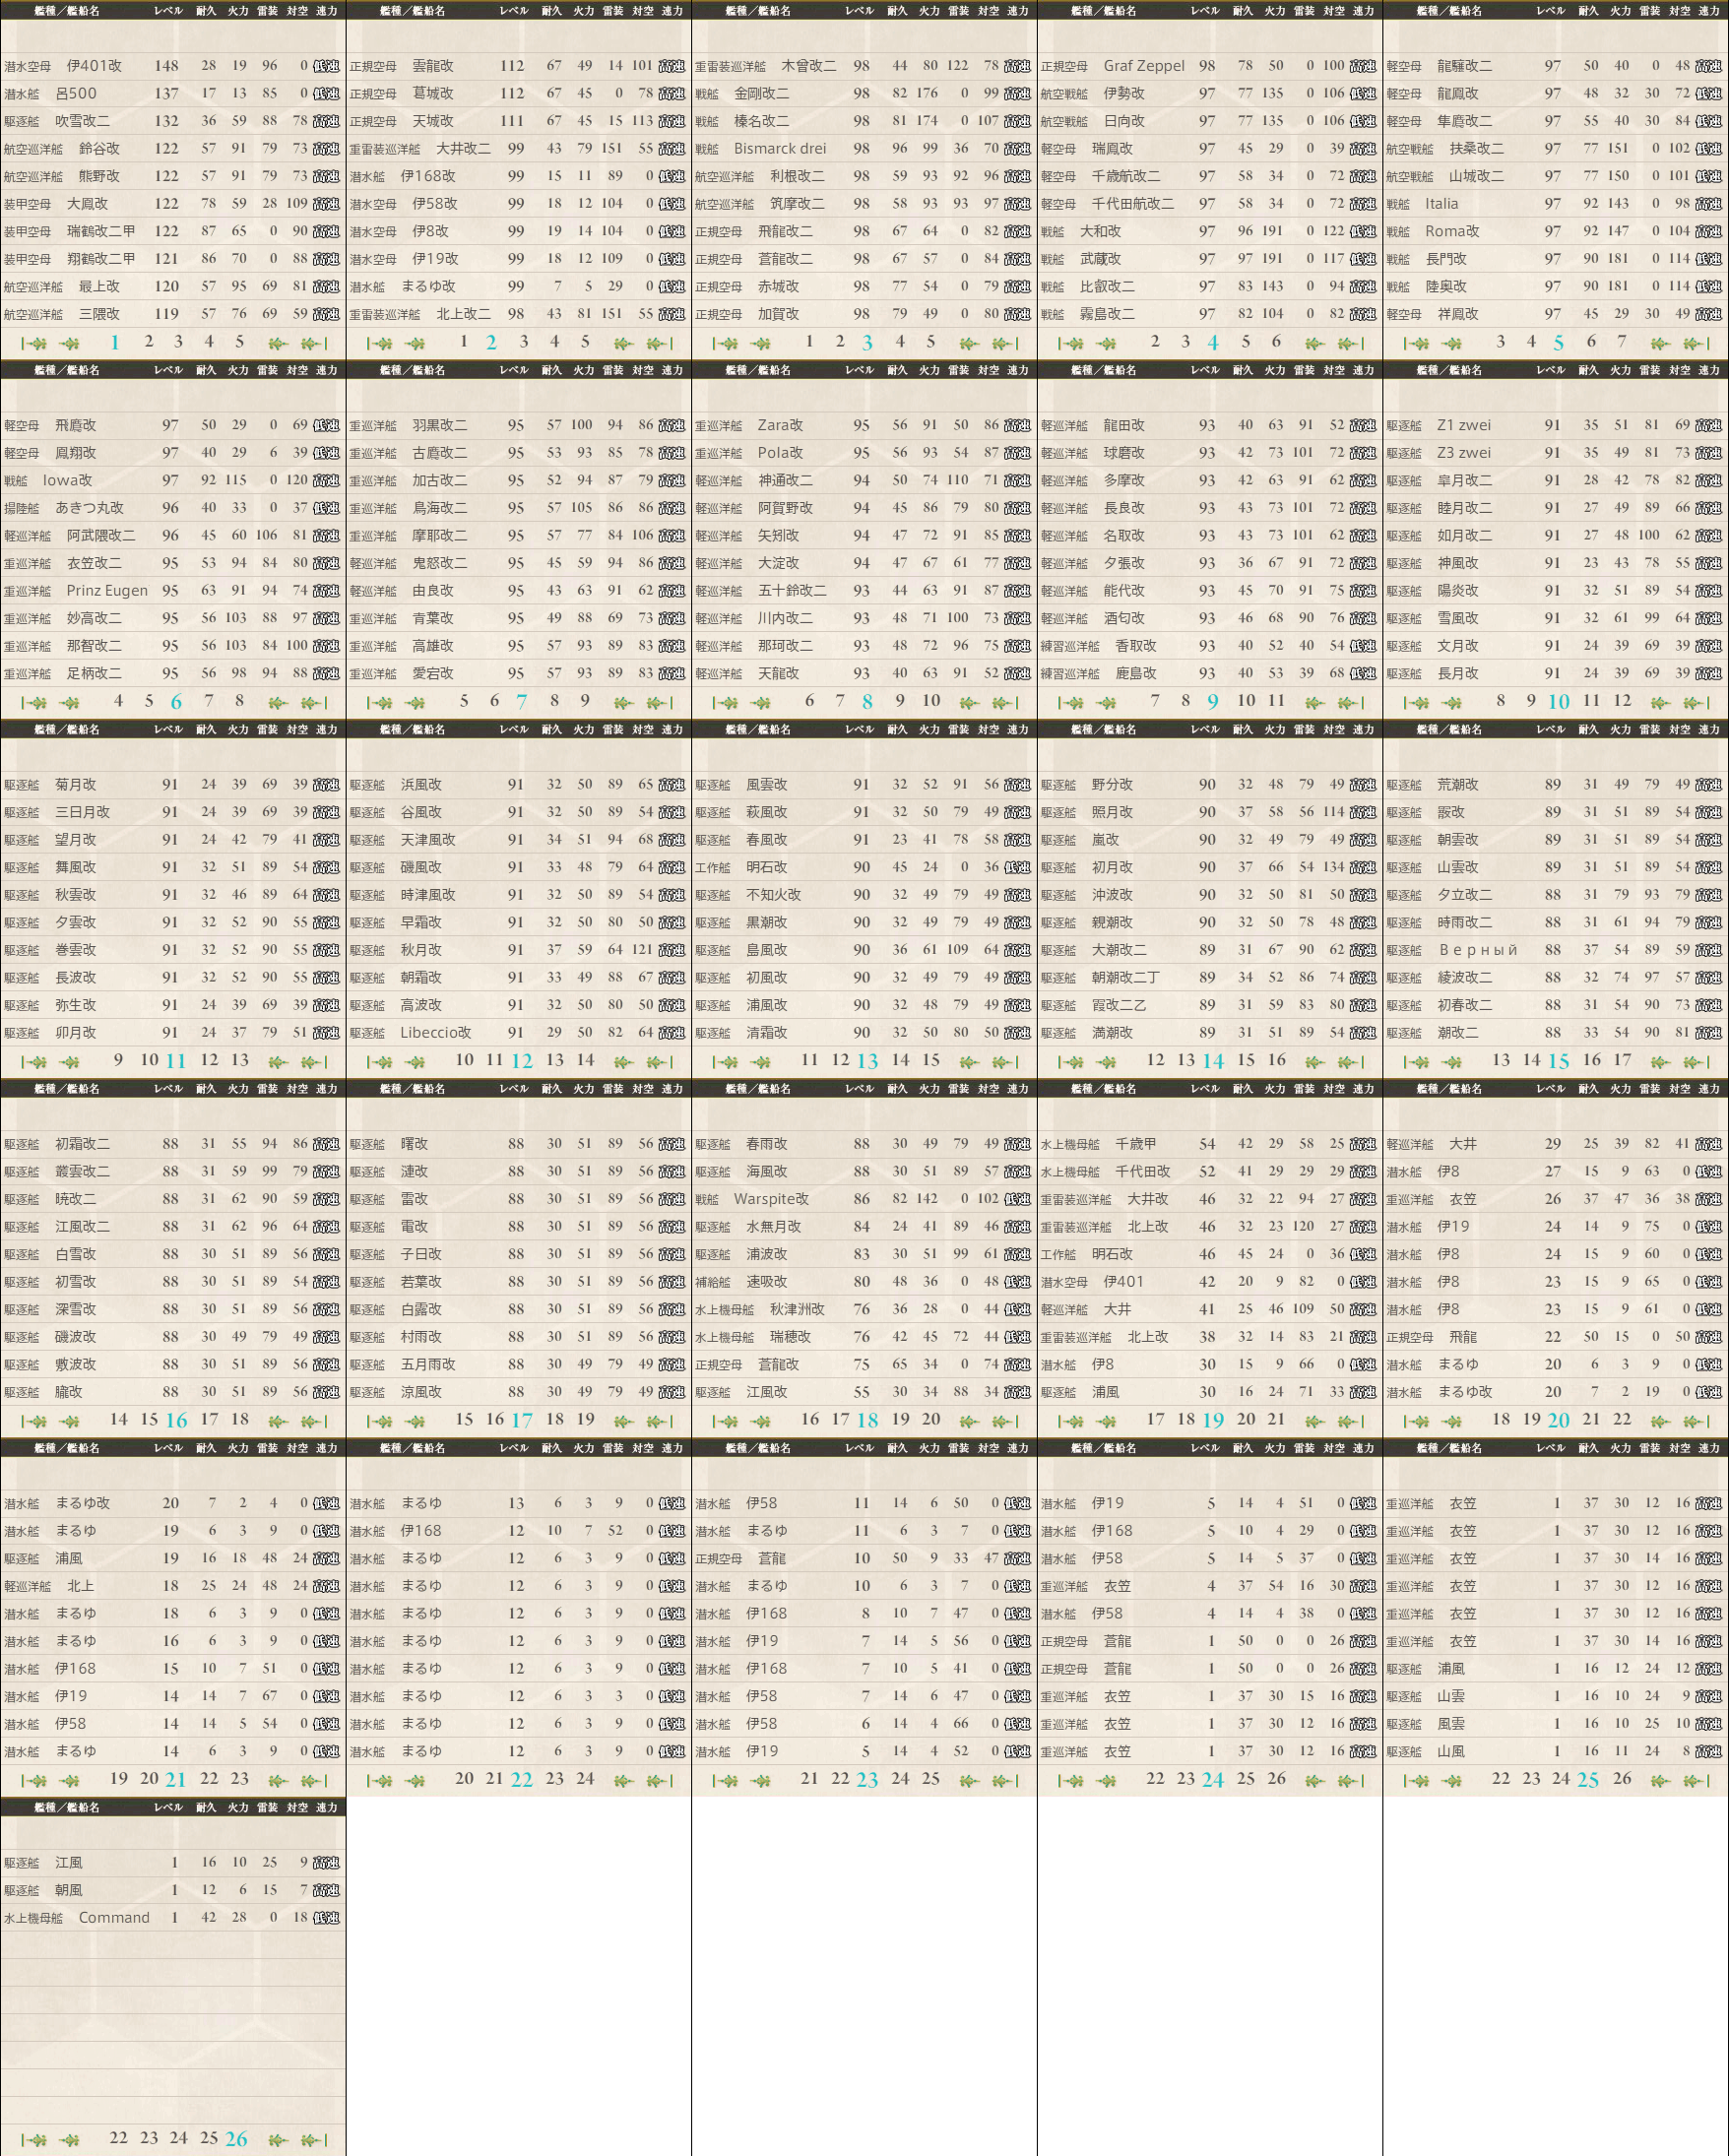 data.kancolle.levelsort.20161127.png